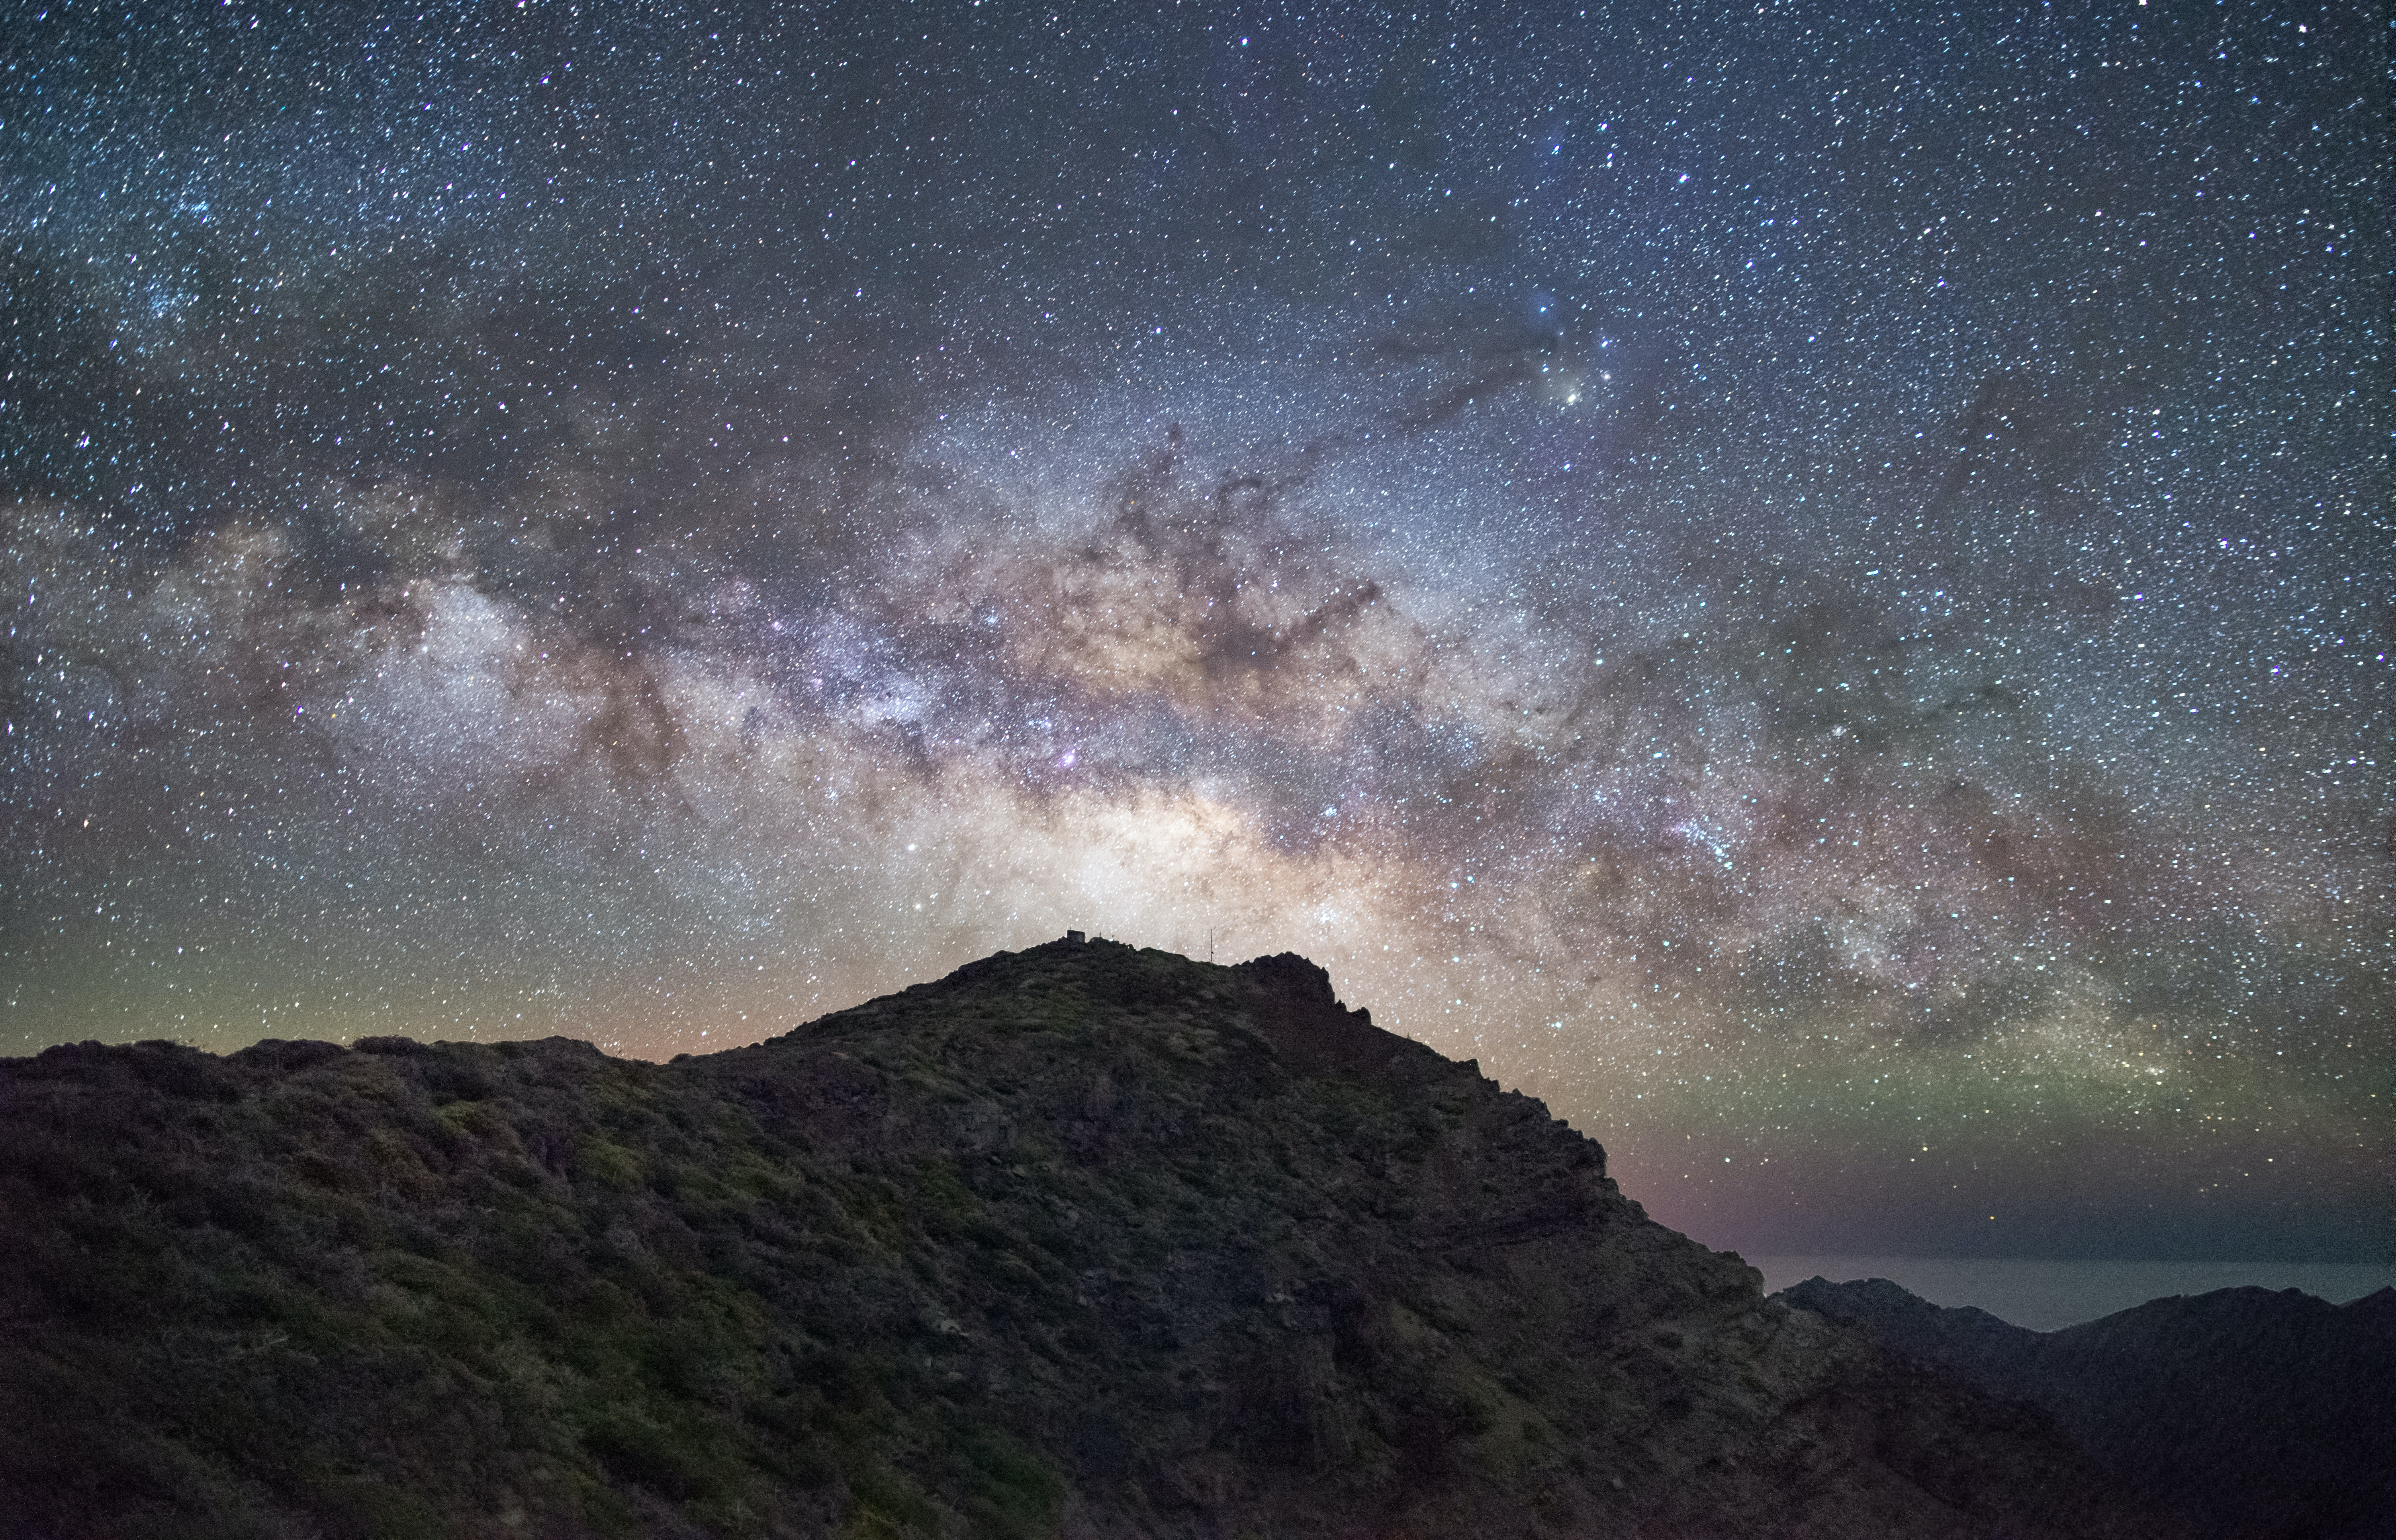 milky way on mountain